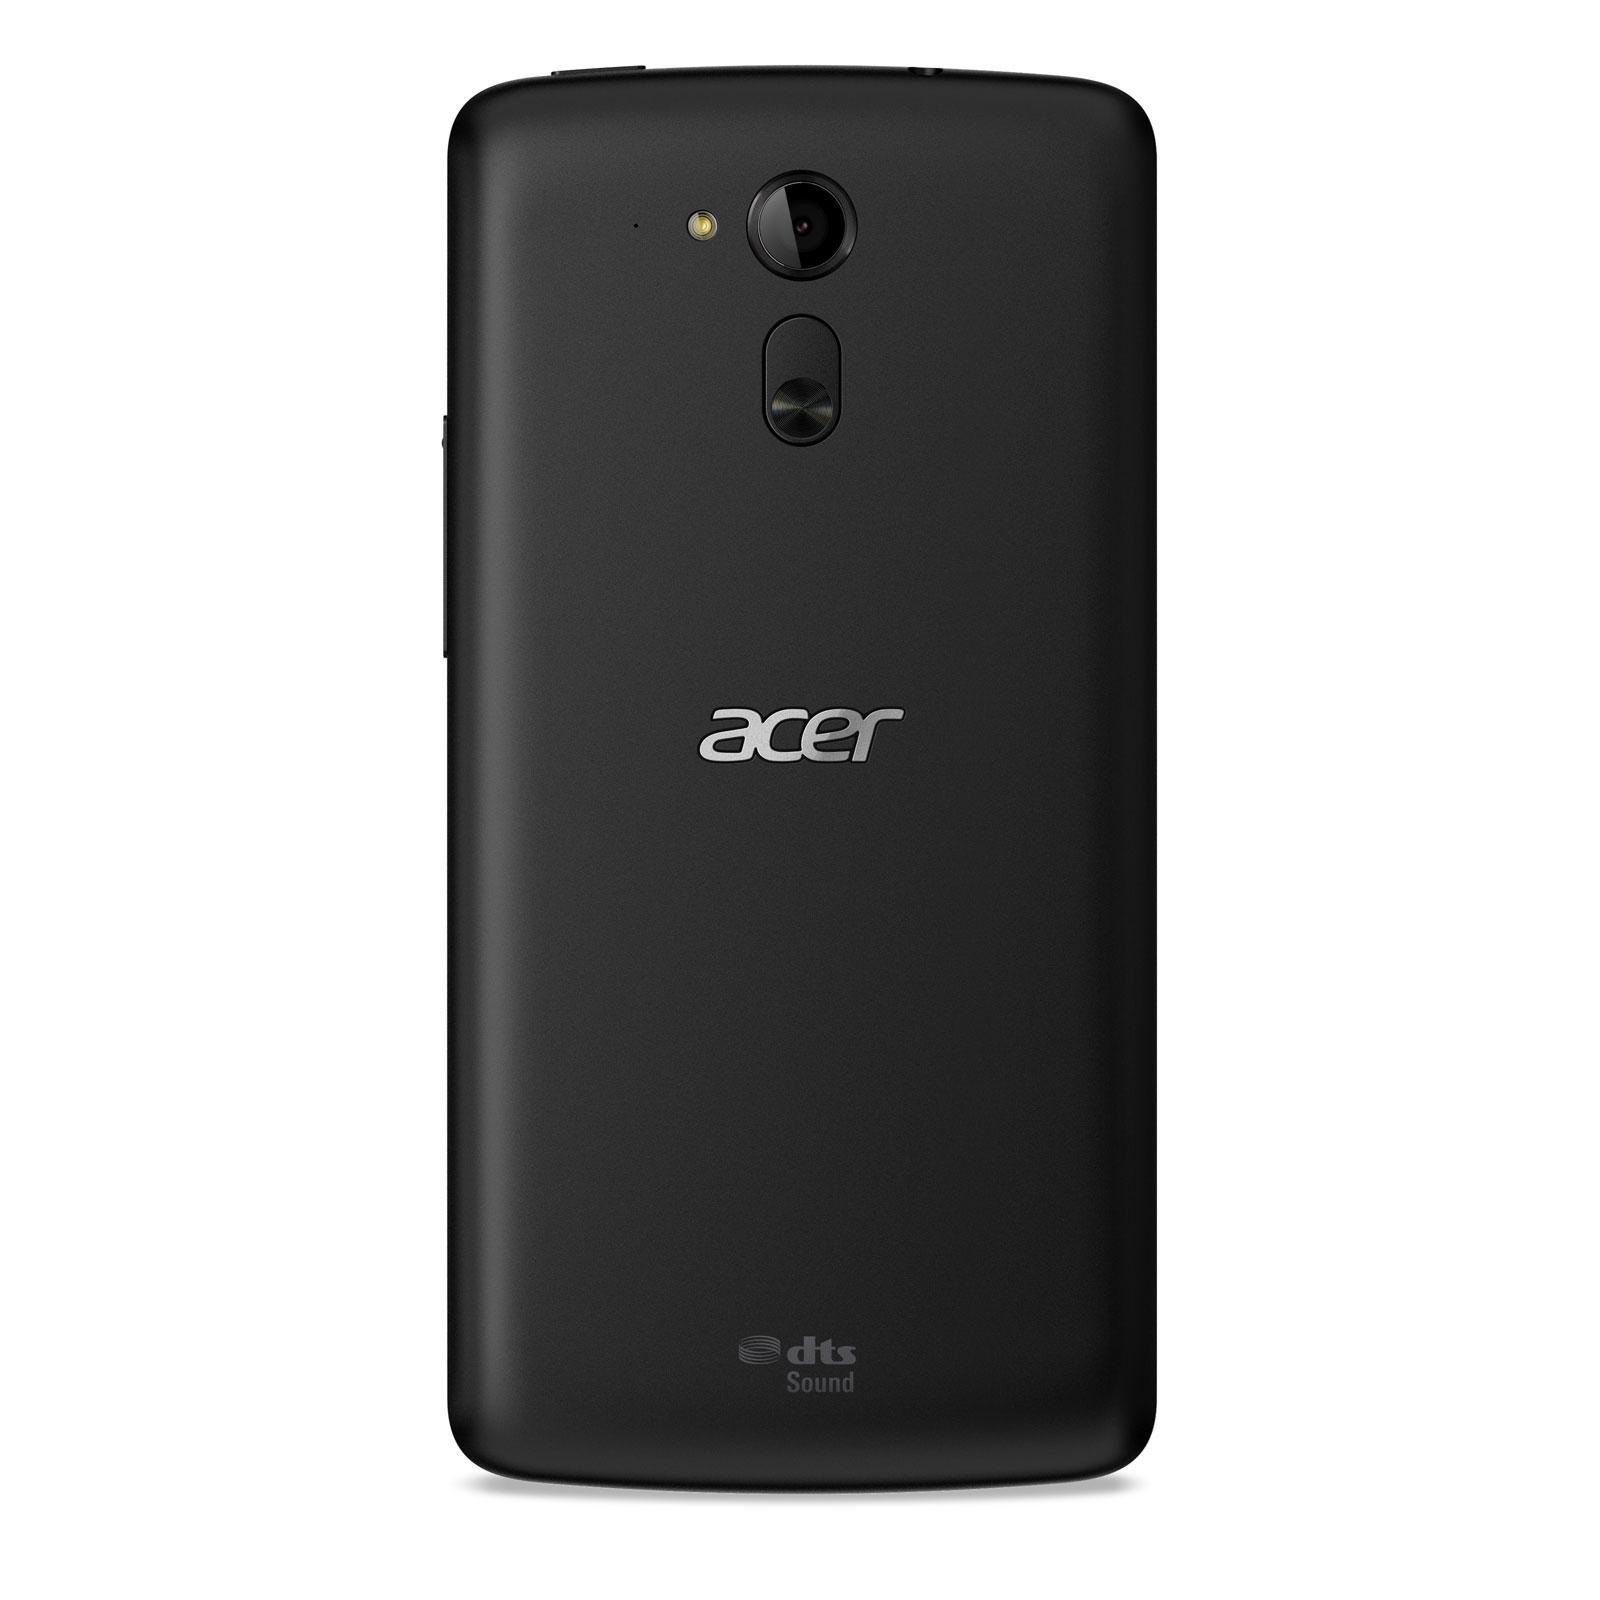 acer liquid e700 trio noir mobile smartphone acer sur. Black Bedroom Furniture Sets. Home Design Ideas